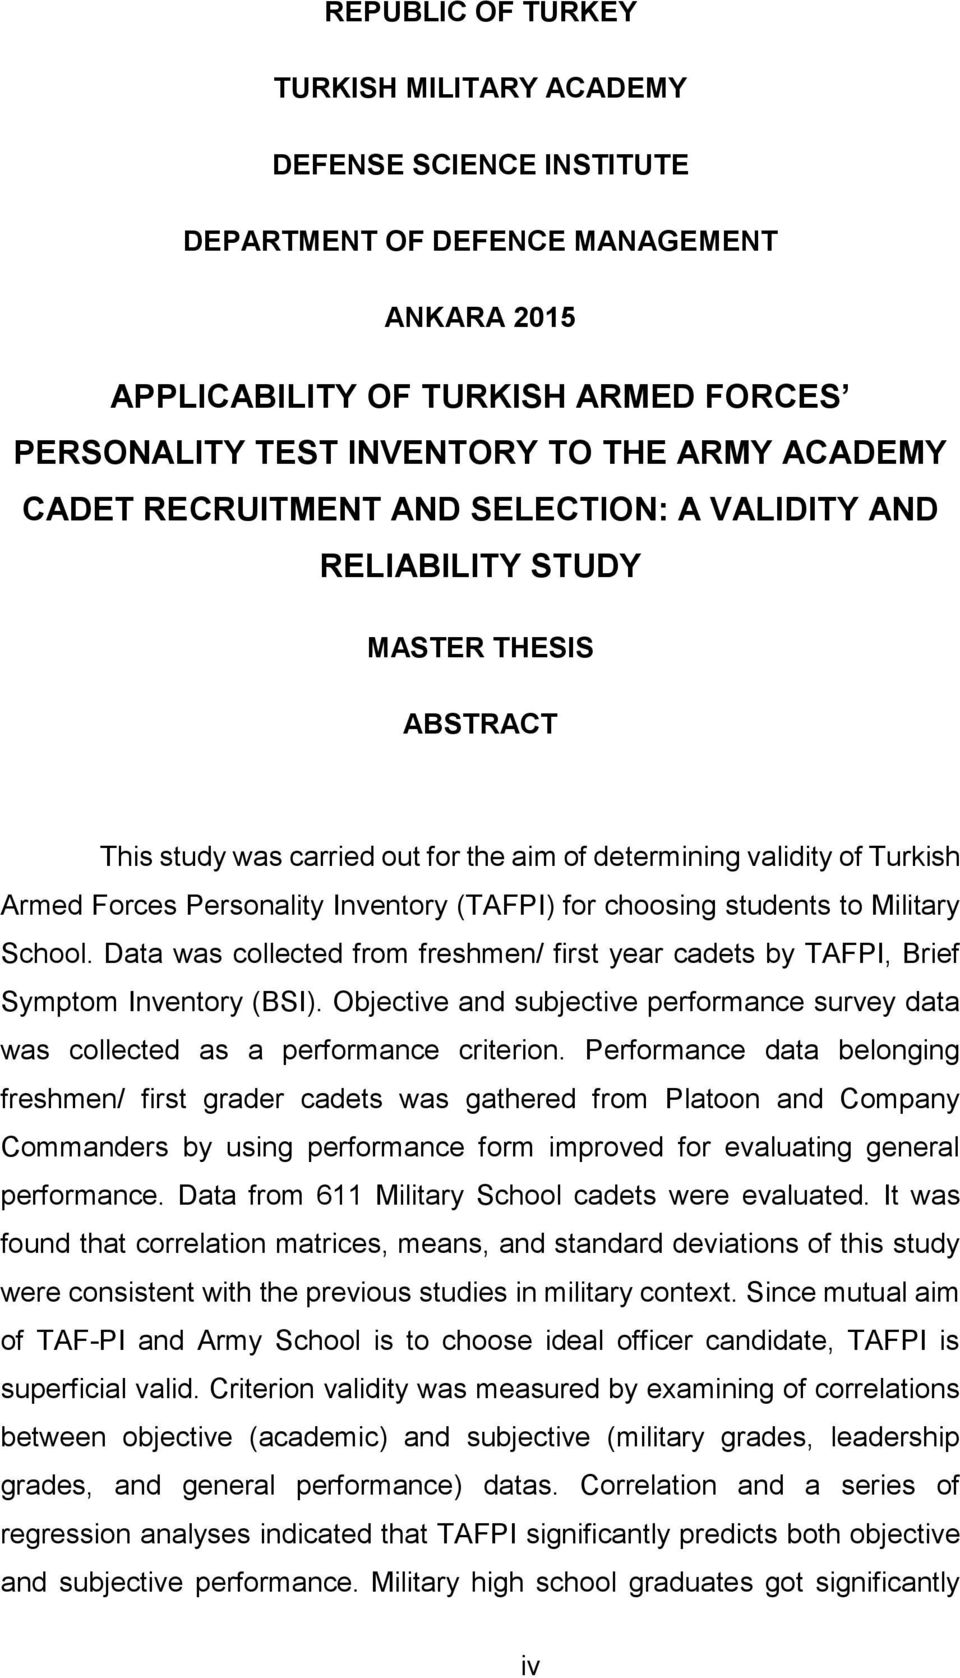 (TAFPI) for choosing students to Military School. Data was collected from freshmen/ first year cadets by TAFPI, Brief Symptom Inventory (BSI).